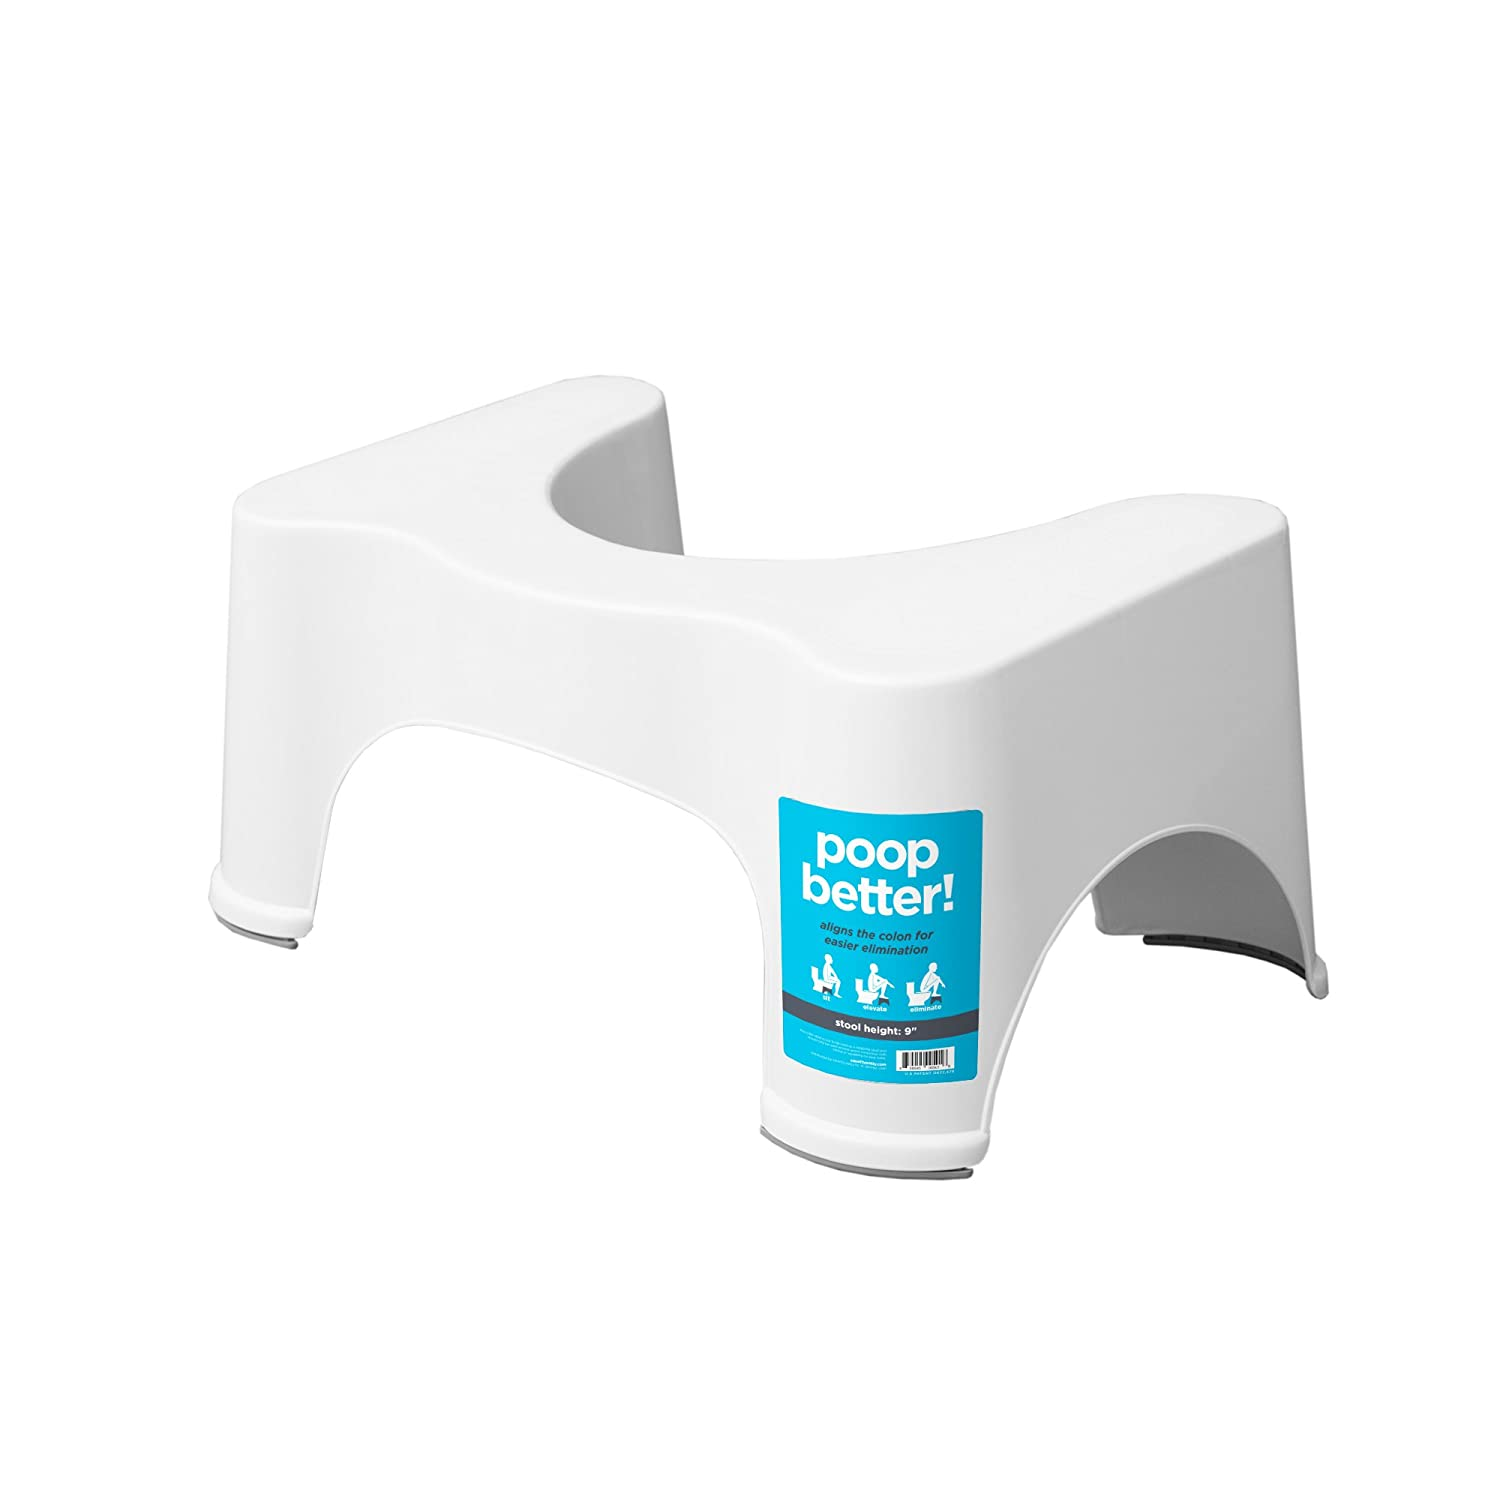 squatty potty in stores